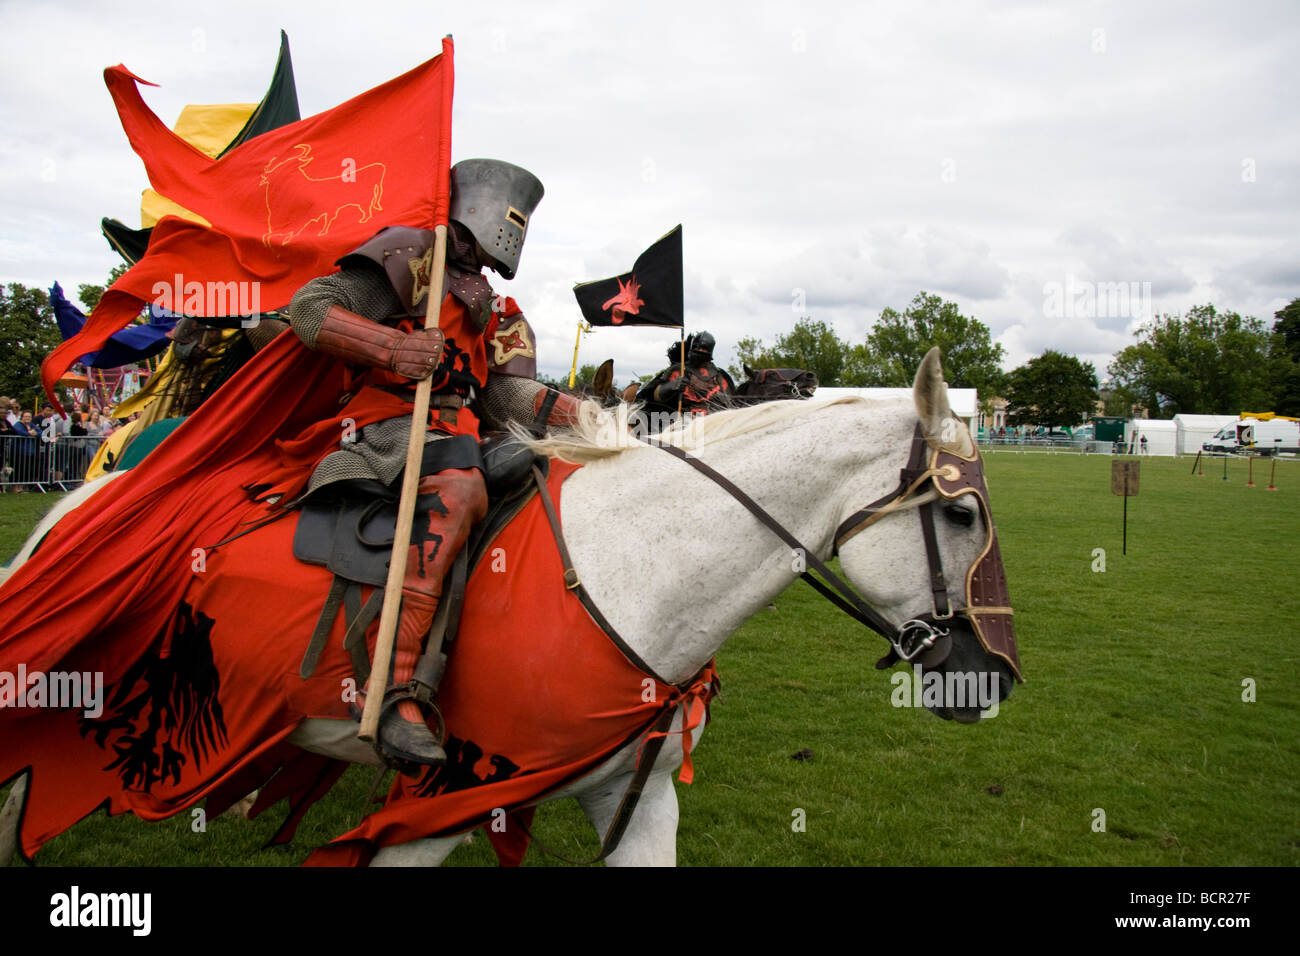 Medieval knights on galloping horses carrying standards or flags, Lambeth Country Show, London, England, UK.  18th - Stock Image